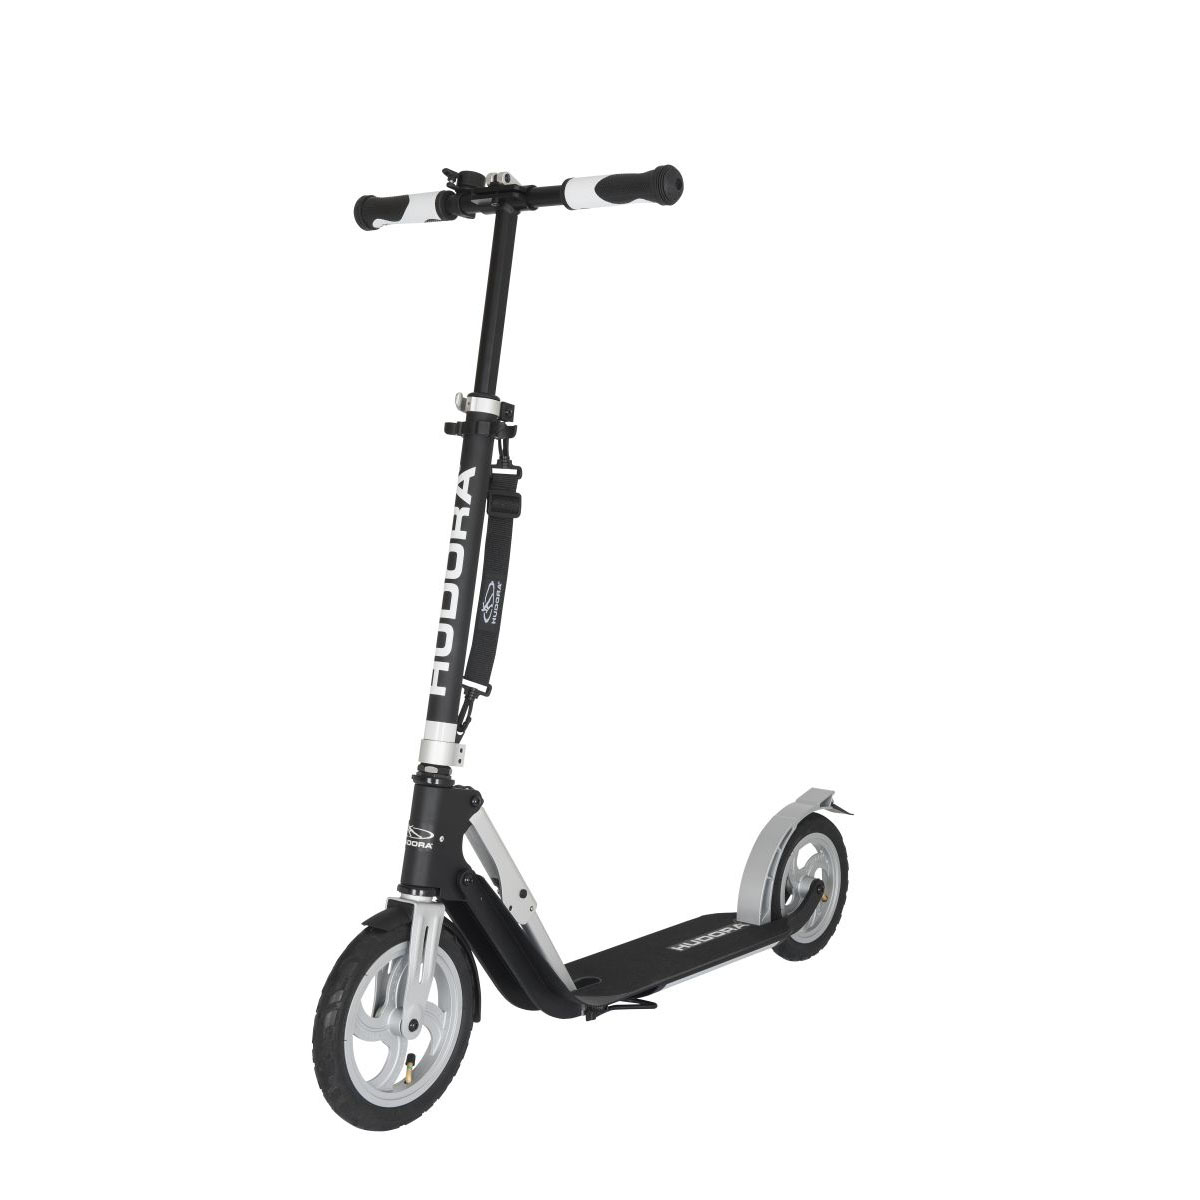 hudora big wheel air 230 scooter mit luftreifen roller. Black Bedroom Furniture Sets. Home Design Ideas